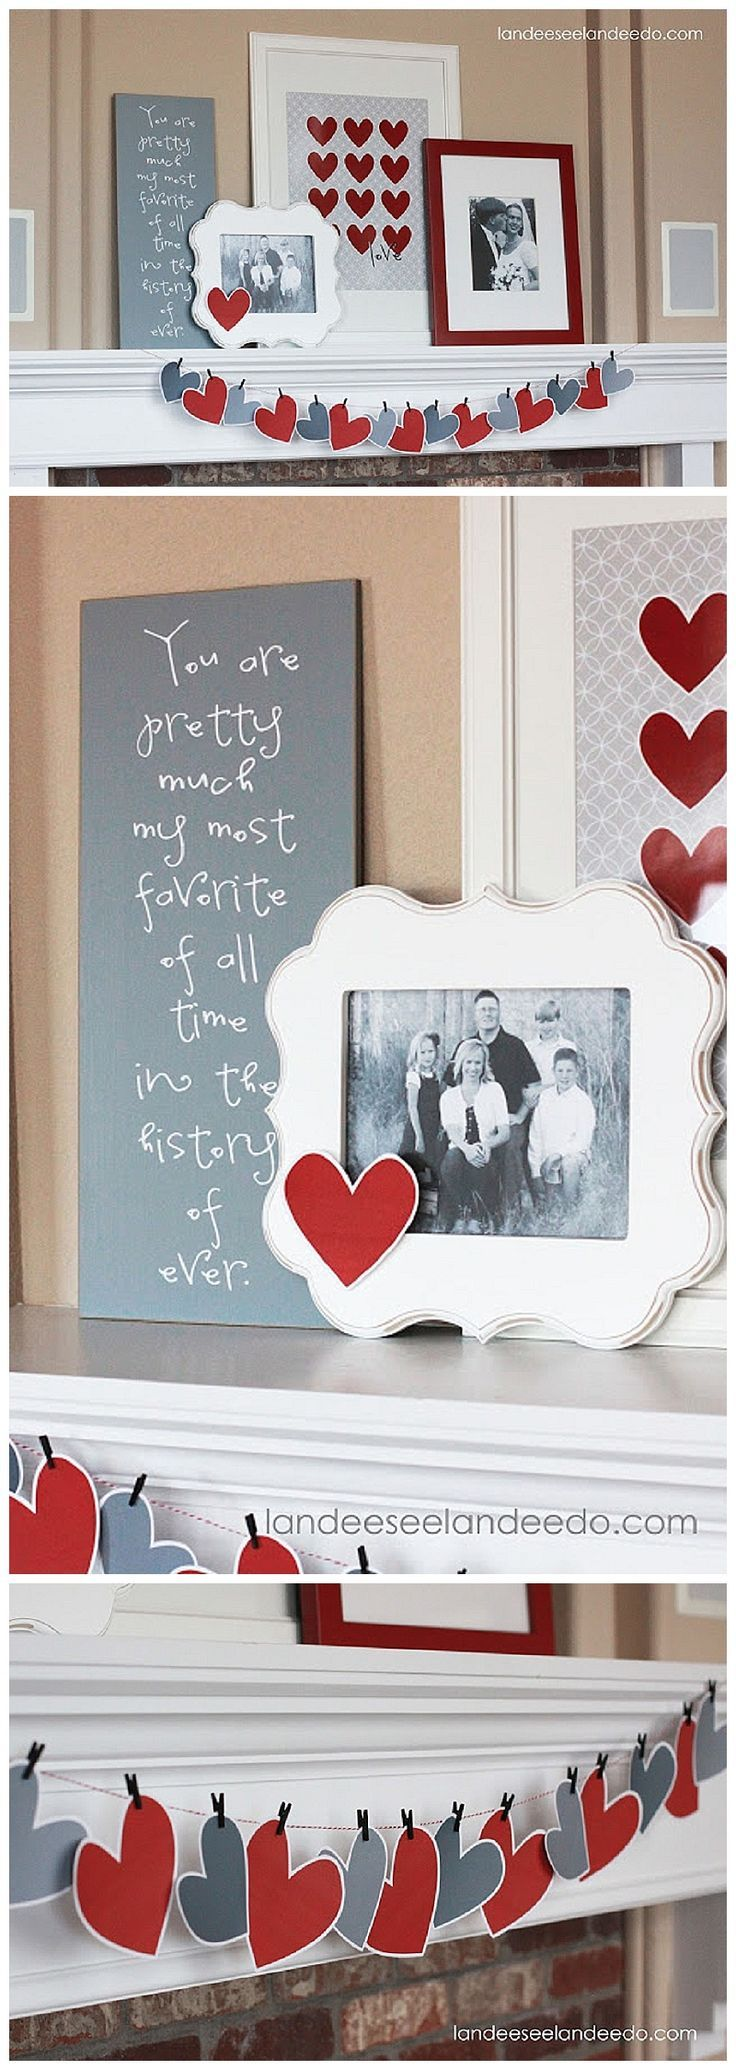 EASY Valentine's Day Mantel Decorations in Hearts, Red, White and Greys - DIY Paper Crafted Garland and FREE PRINTABLE